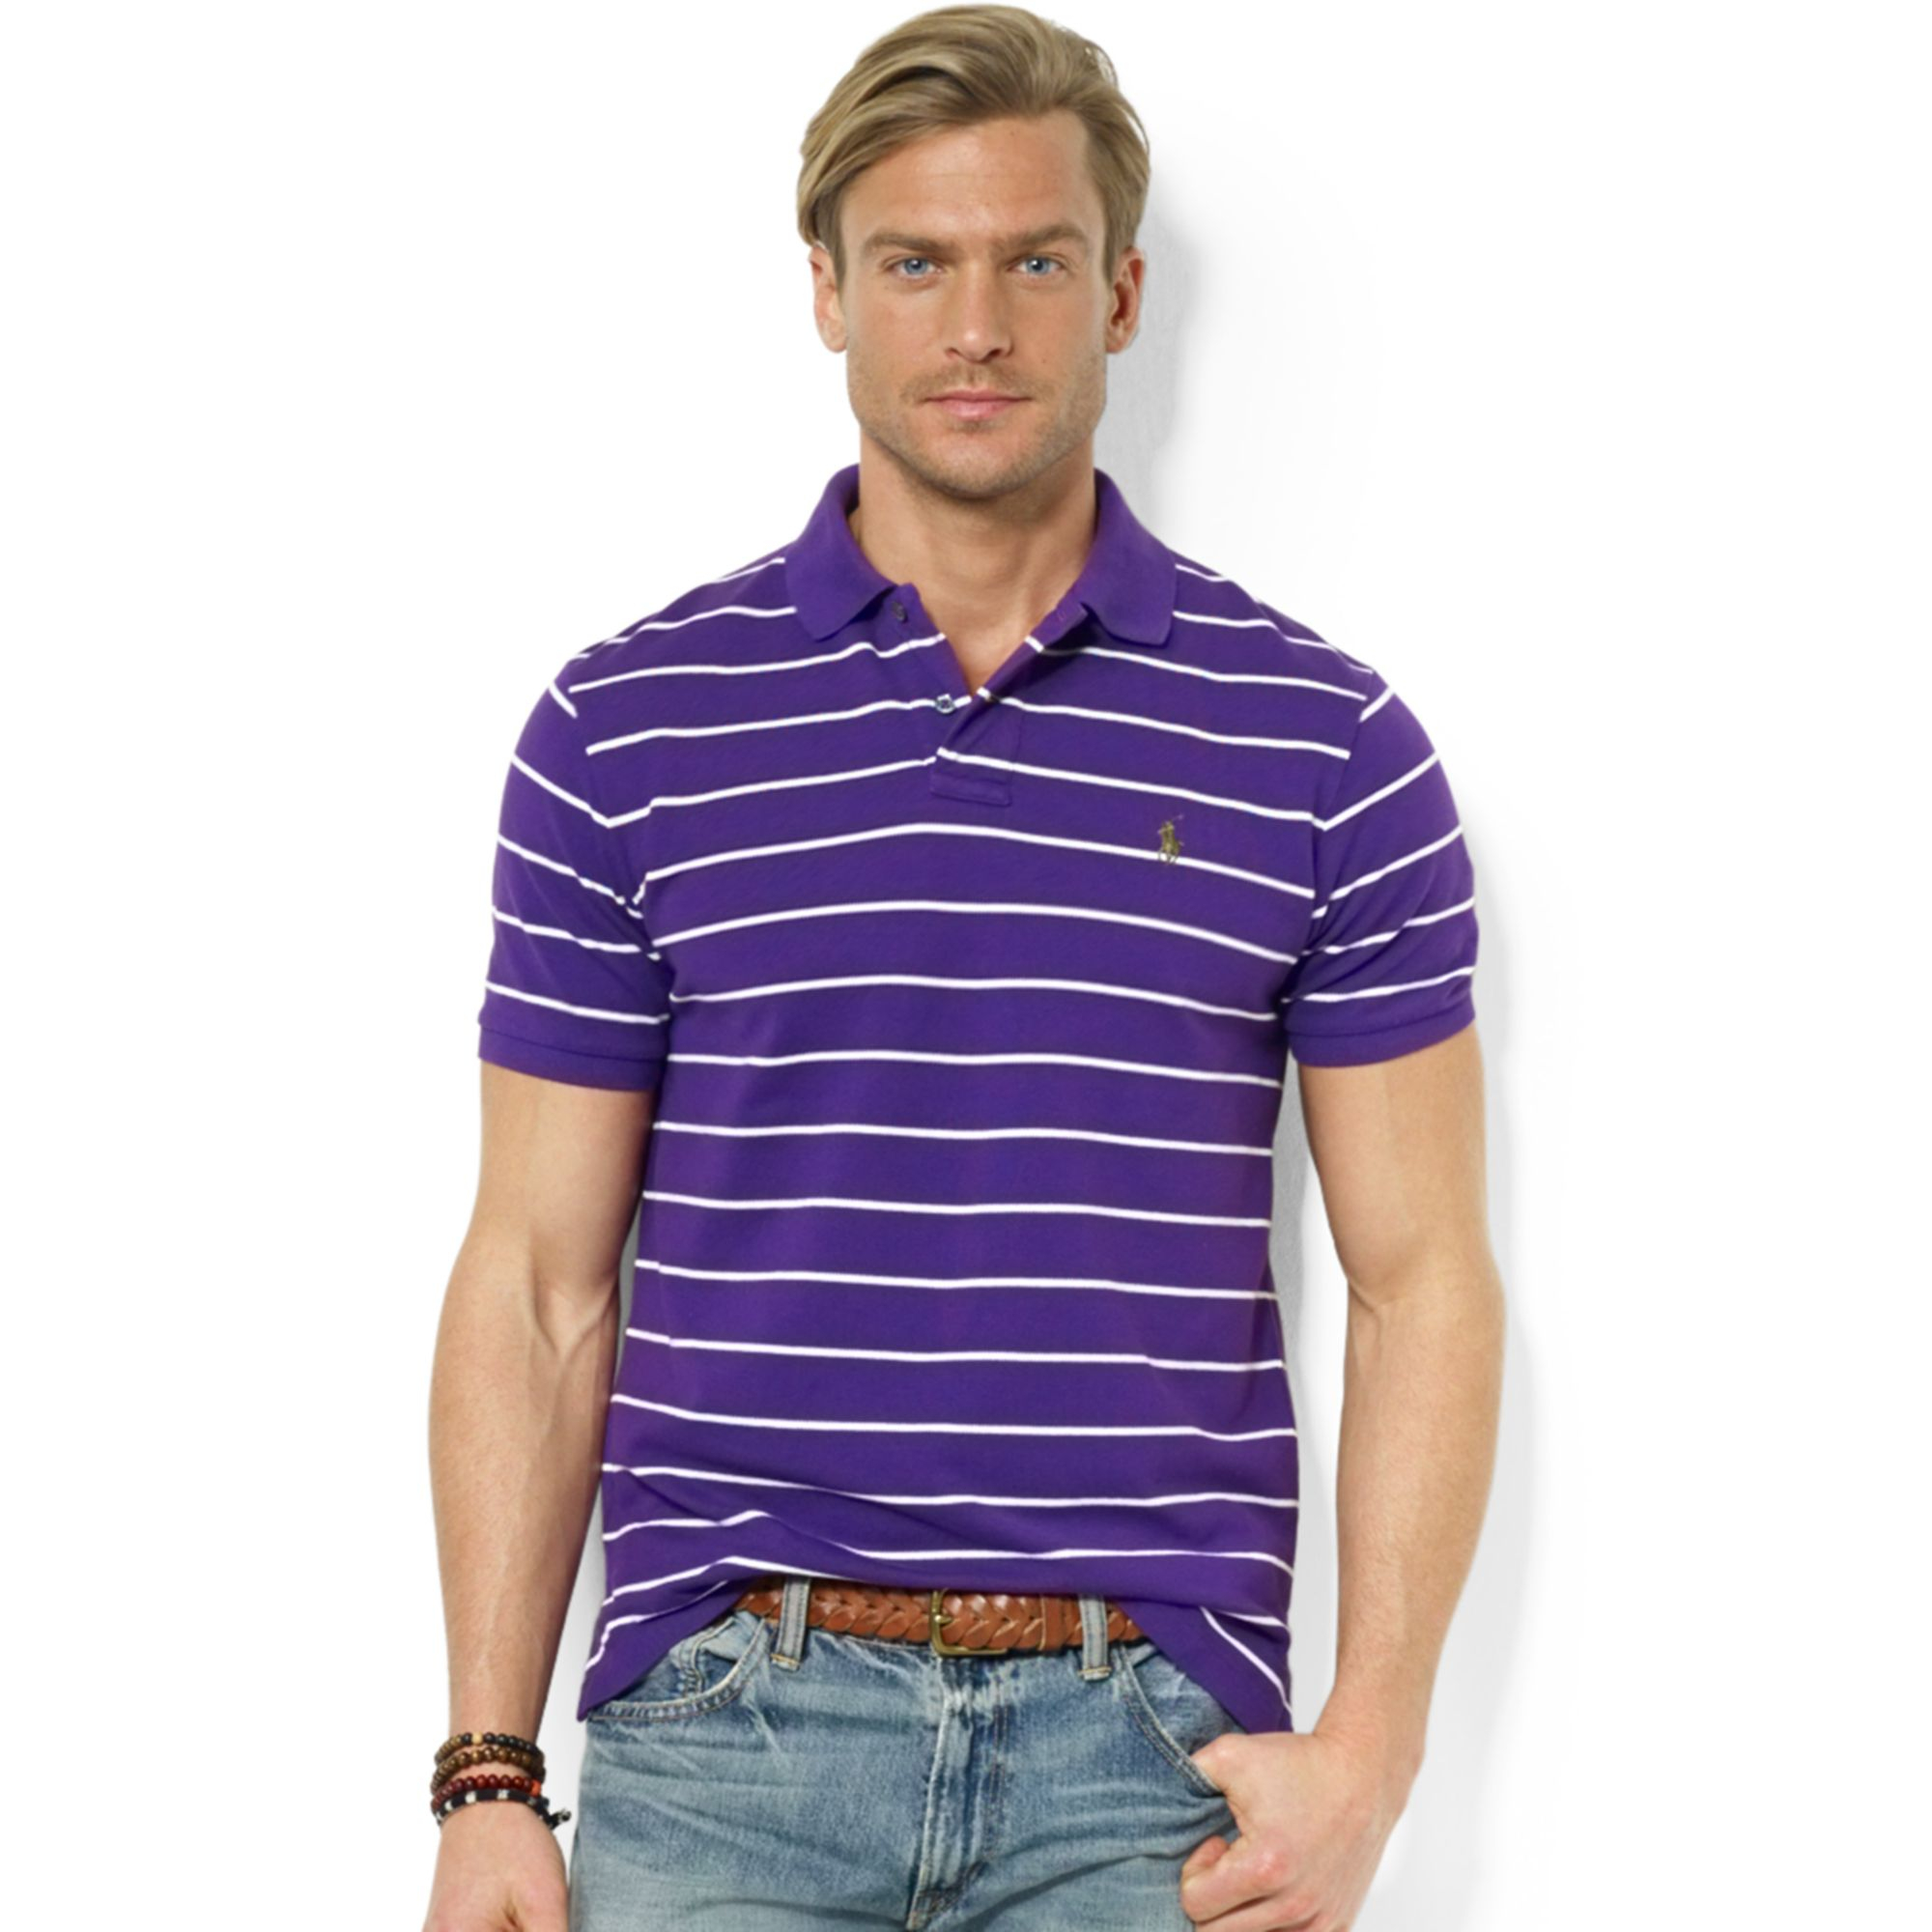 f8dba53c6d05 ... authentic lyst ralph lauren polo customfit striped stretchmesh polo  shirt in 11607 be656